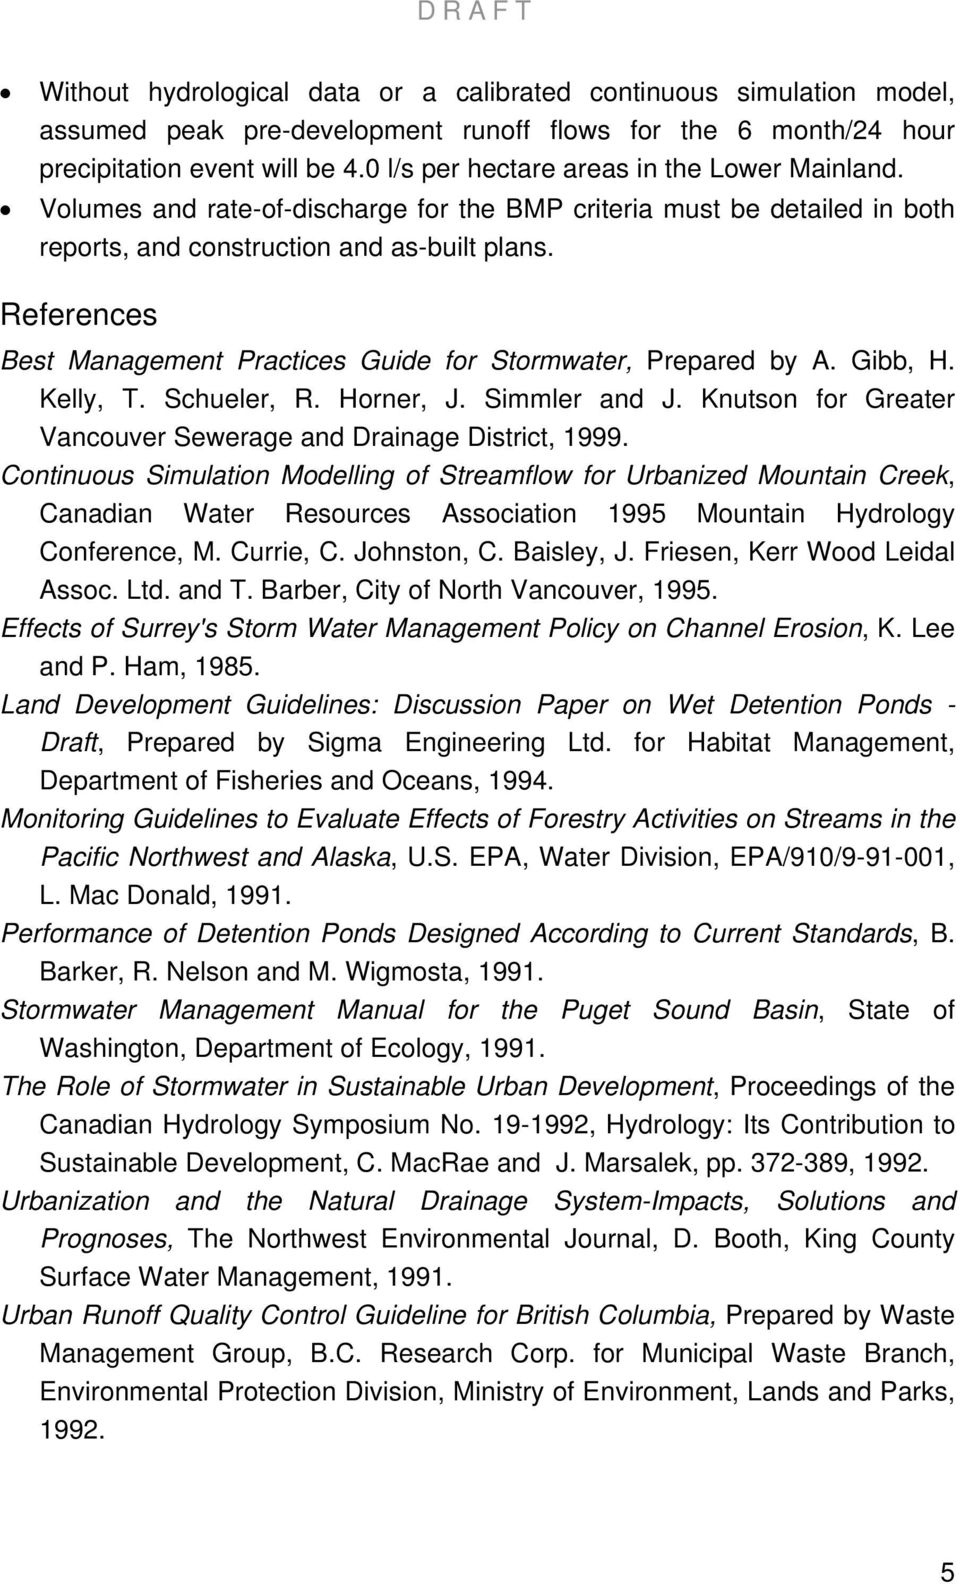 References Best Management Practices Guide for Stormwater, Prepared by A. Gibb, H. Kelly, T. Schueler, R. Horner, J. Simmler and J. Knutson for Greater Vancouver Sewerage and Drainage District, 1999.